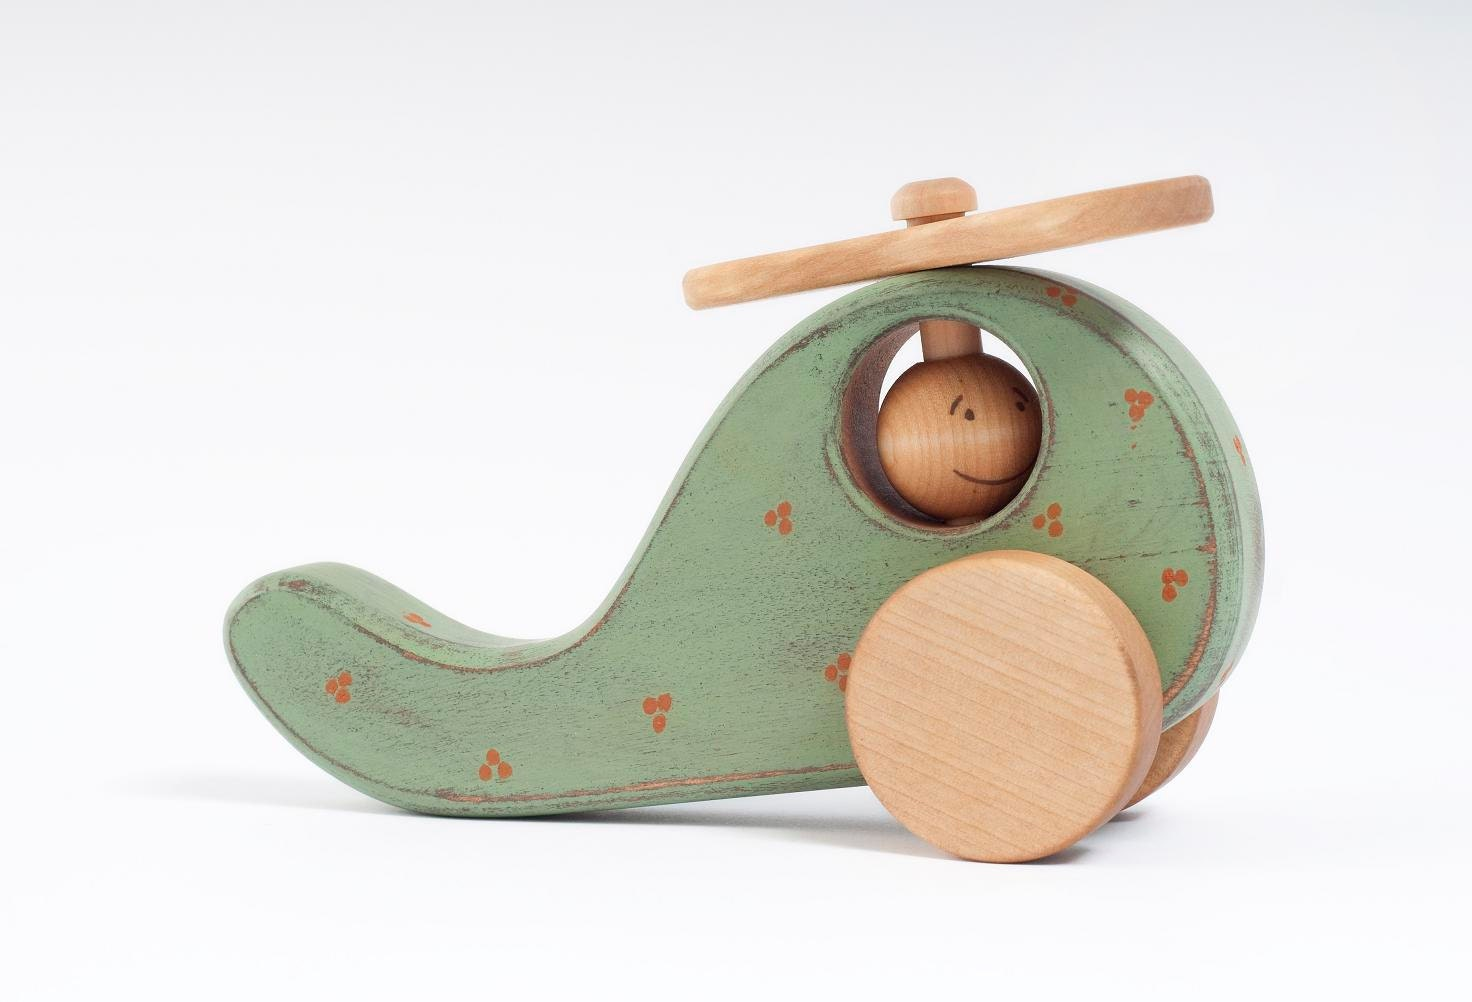 Wooden Toy mint green Helicopter, eco-friendly kid toy - FriendlyToys